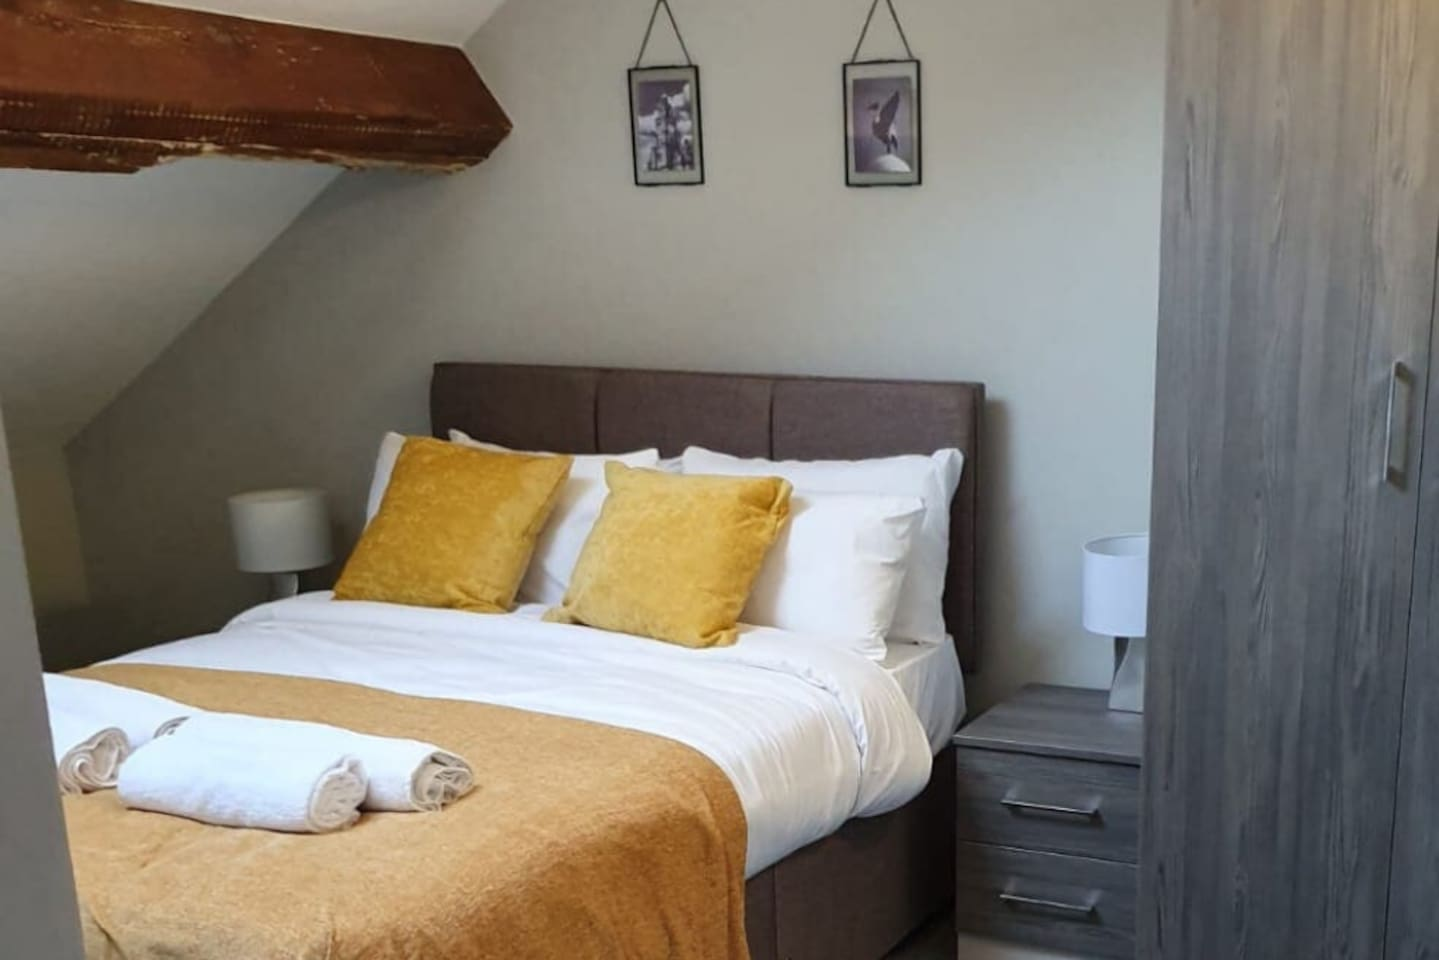 Double bed in the separate bedroom.